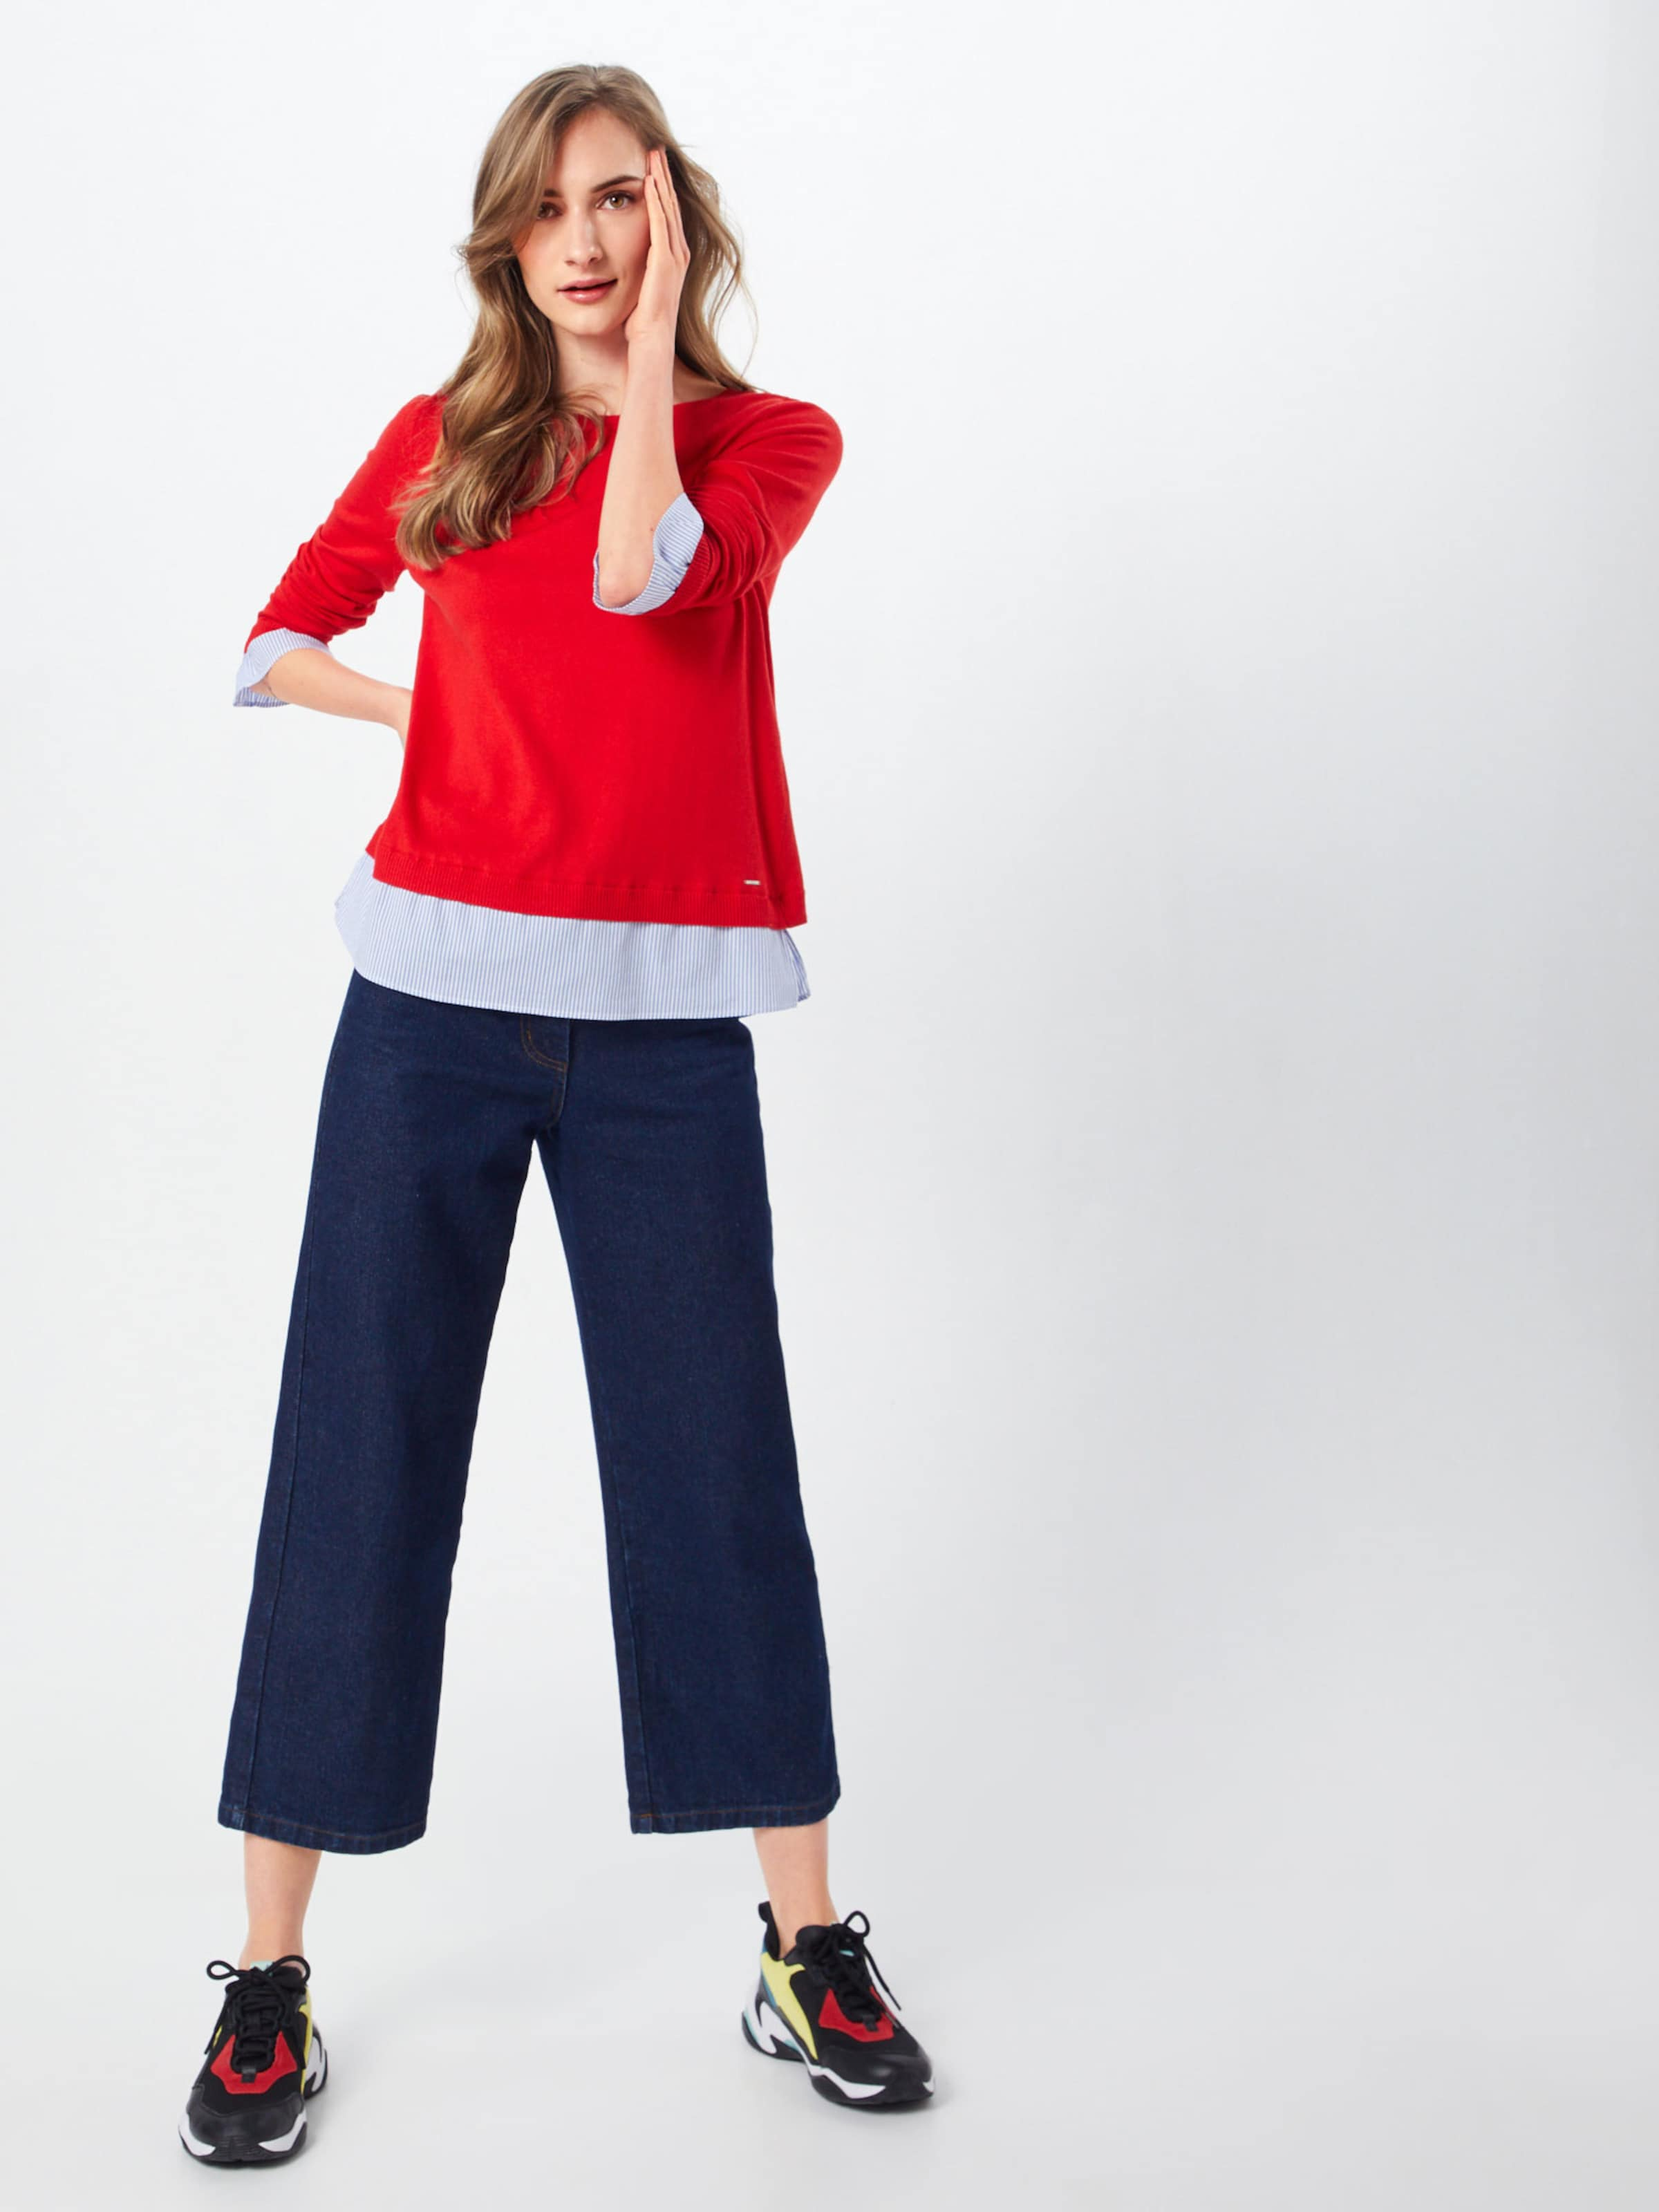 Label Red oliver S HellblauRot Pullover In 4RAq3j5L